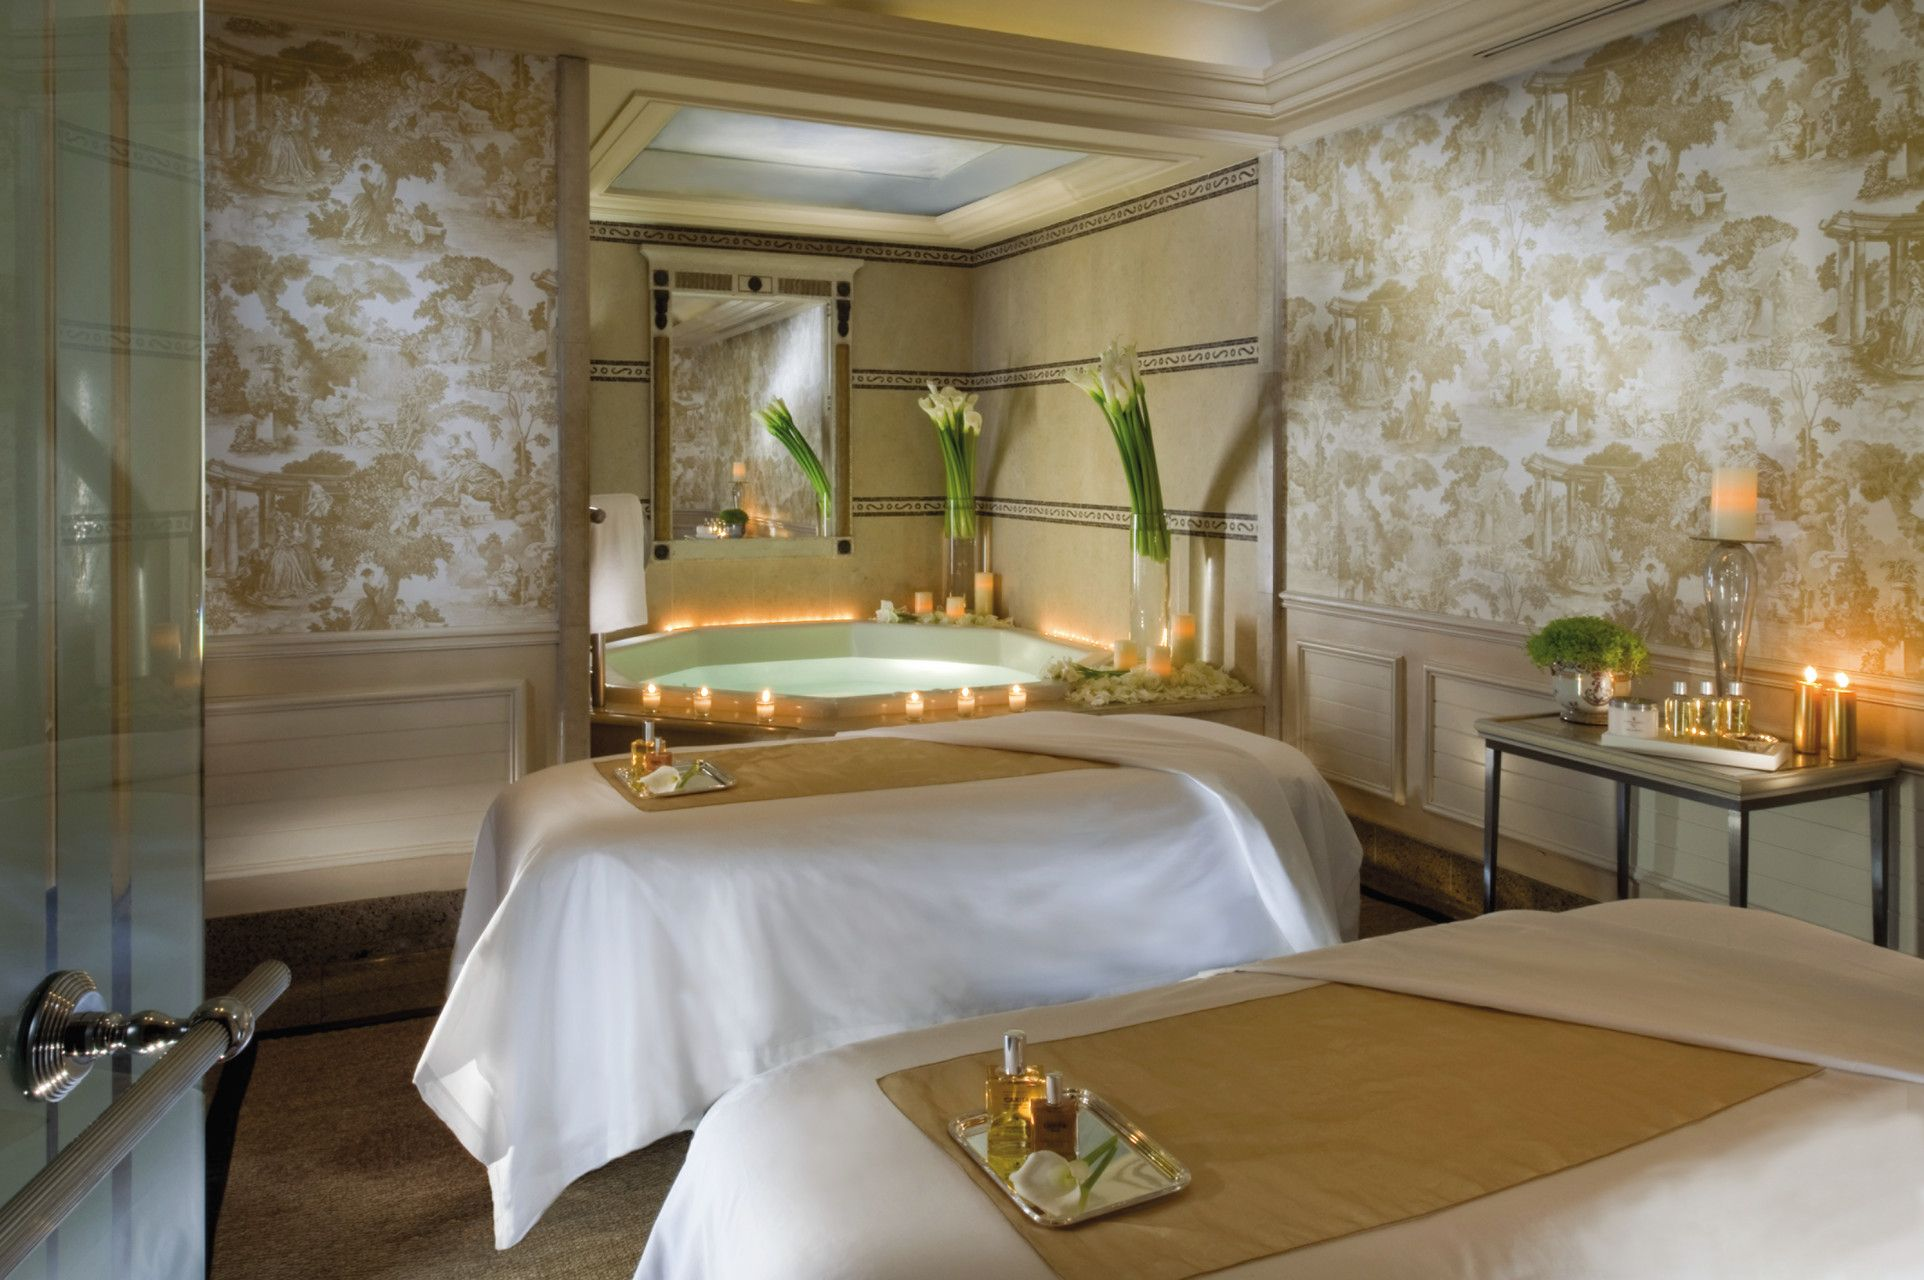 images about Spa on Pinterest Massage Four seasons and